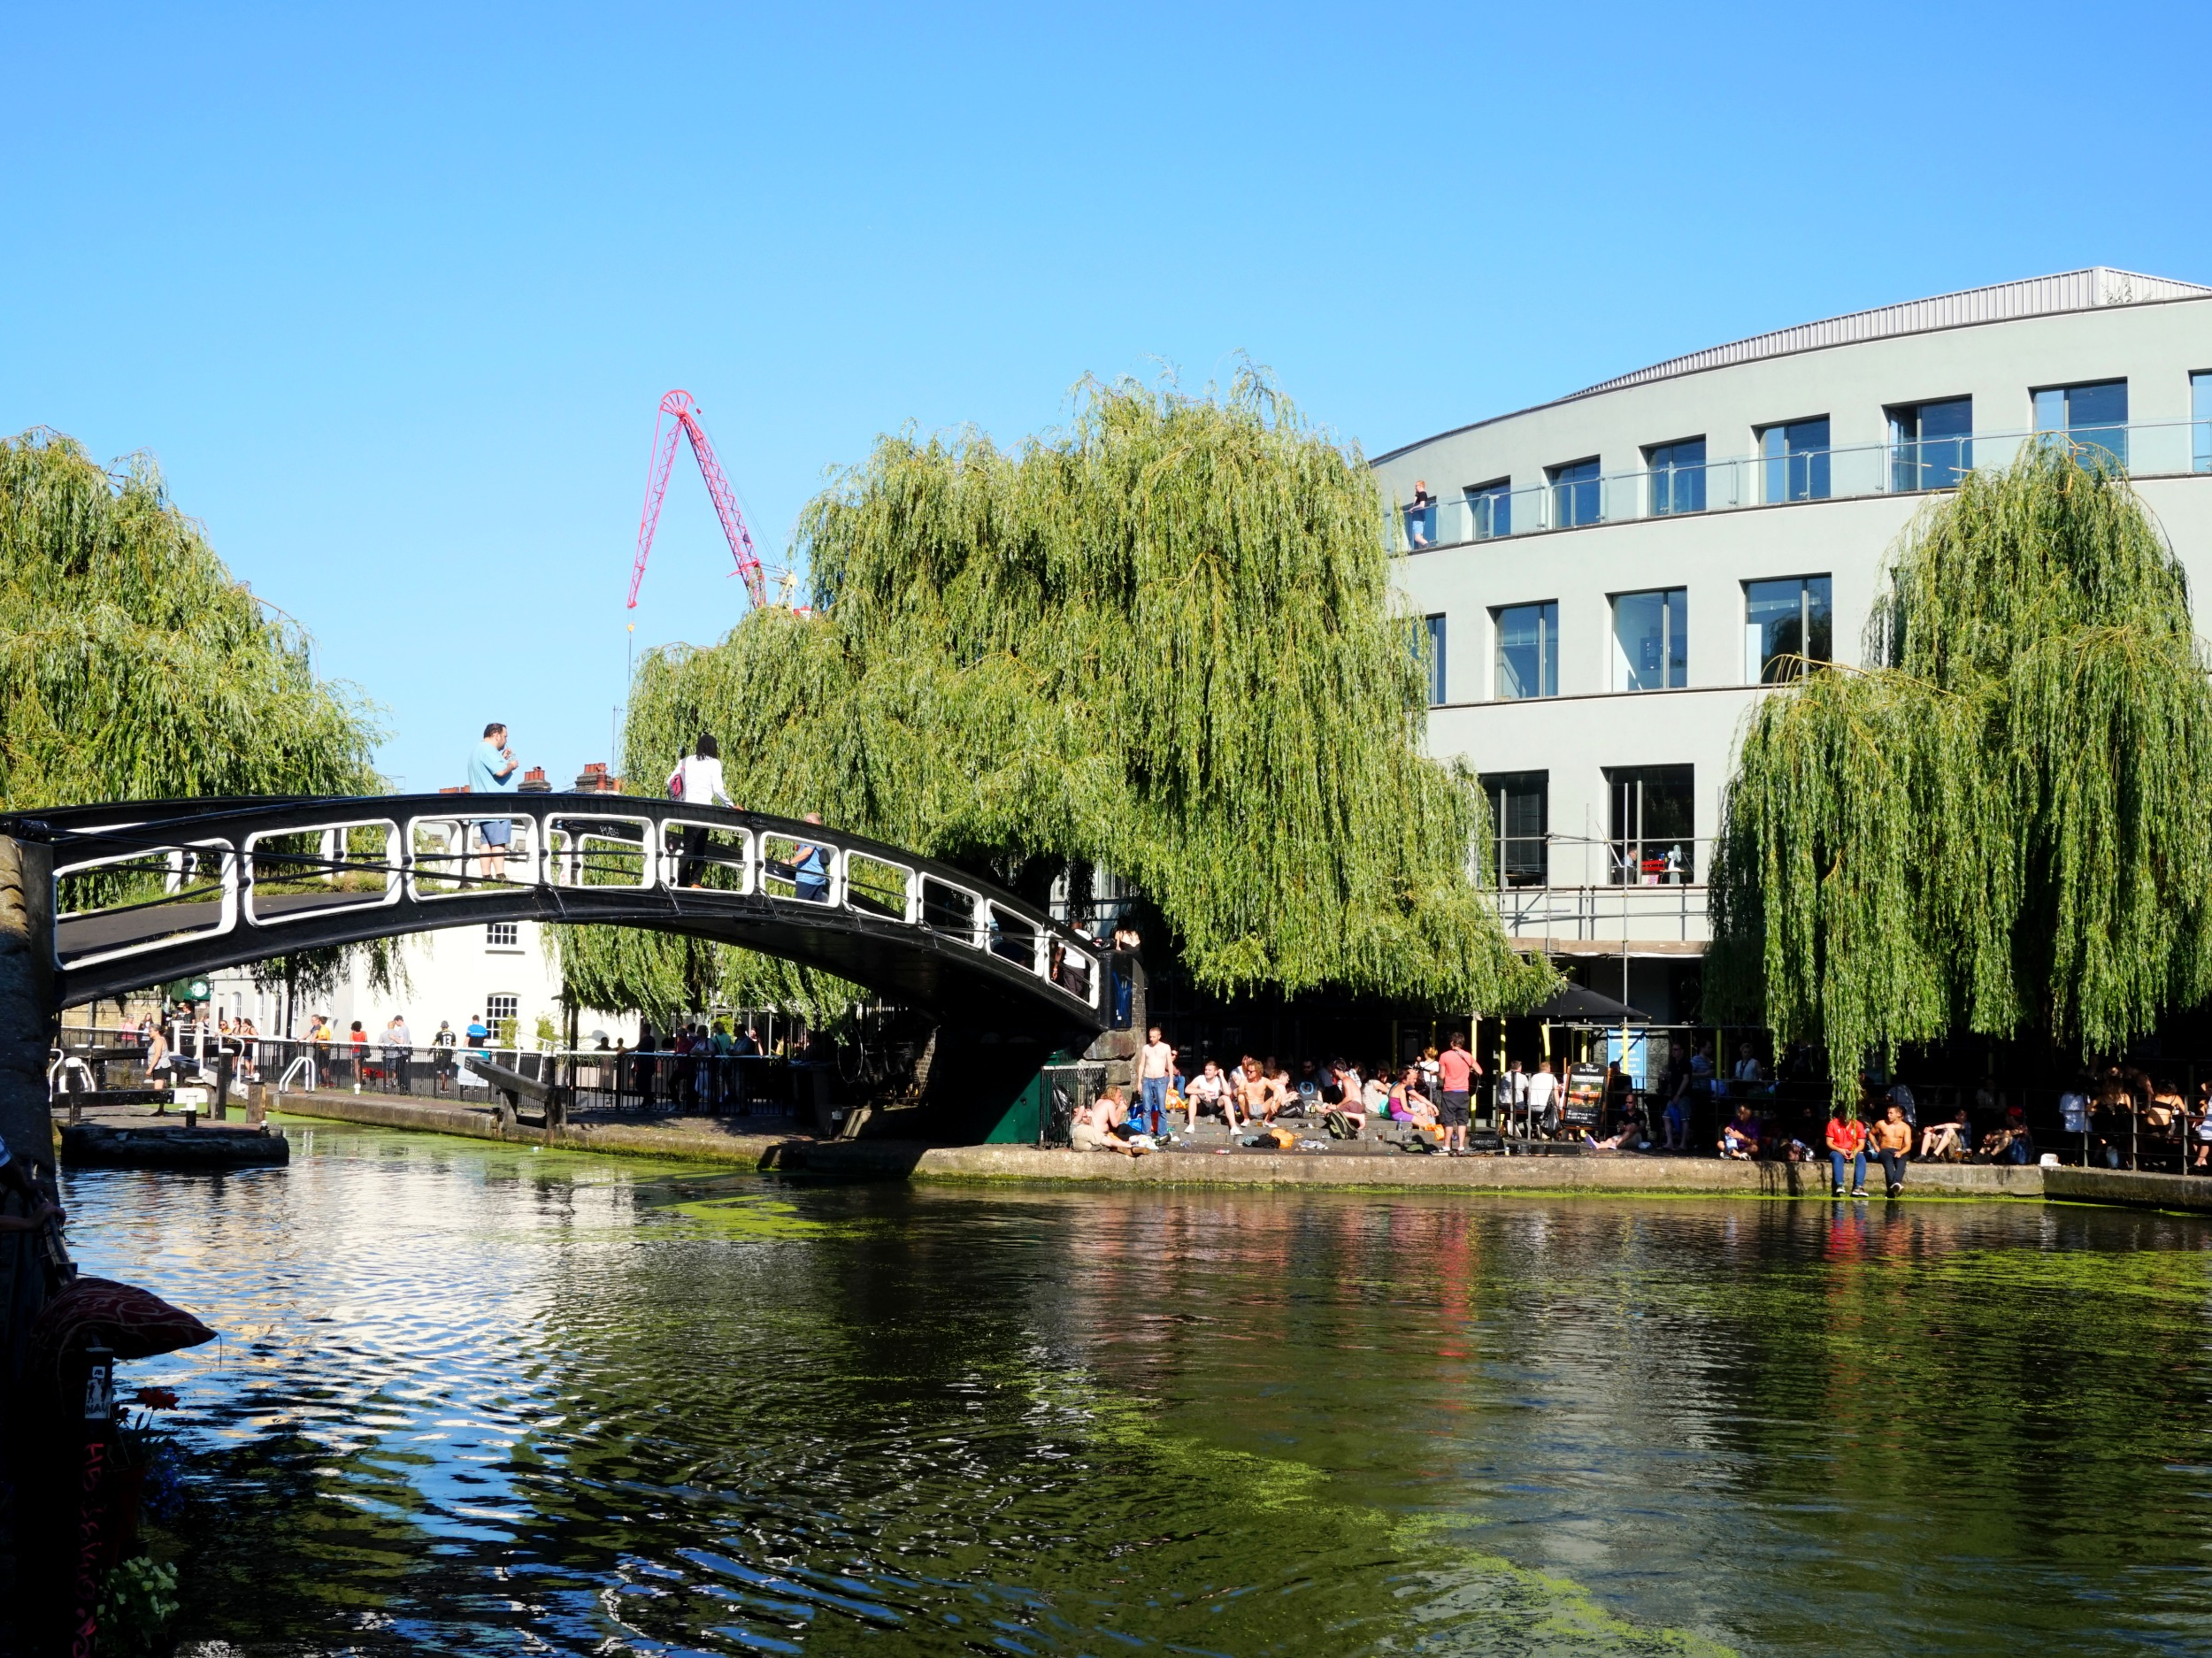 Regents-Canal-57